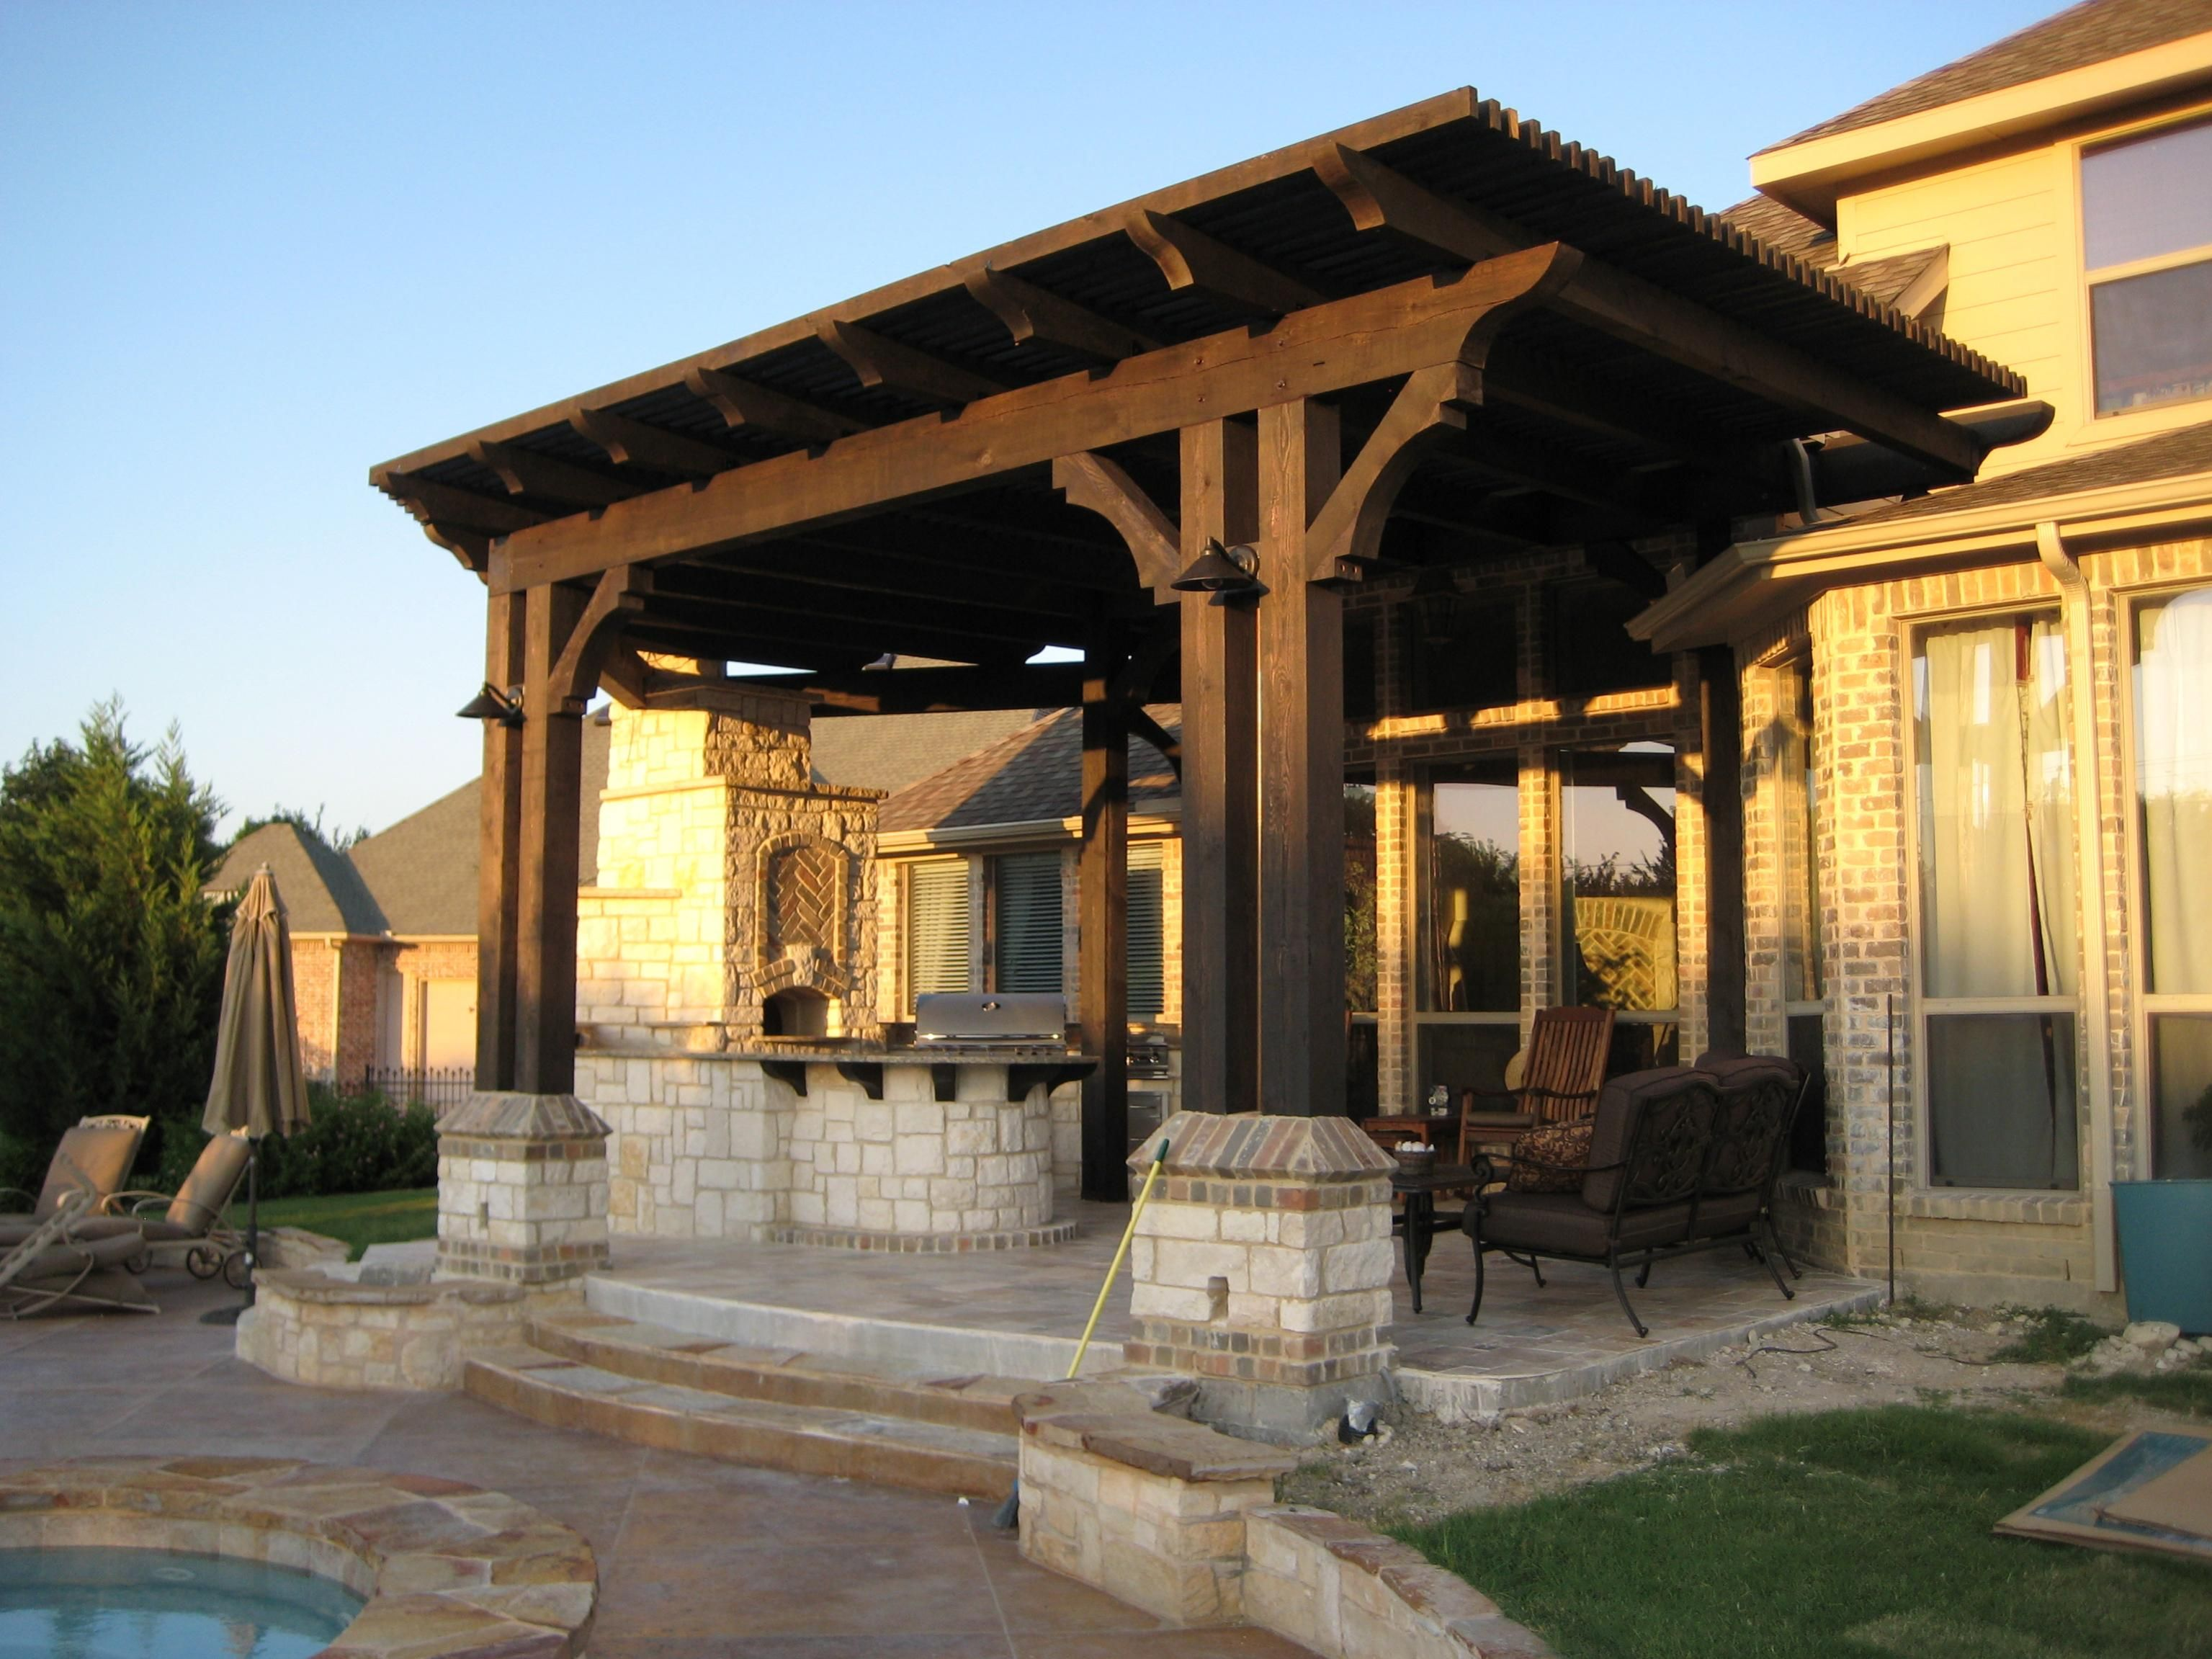 Pergola outdoor kitchen attached to house pergola design Outside veranda designs